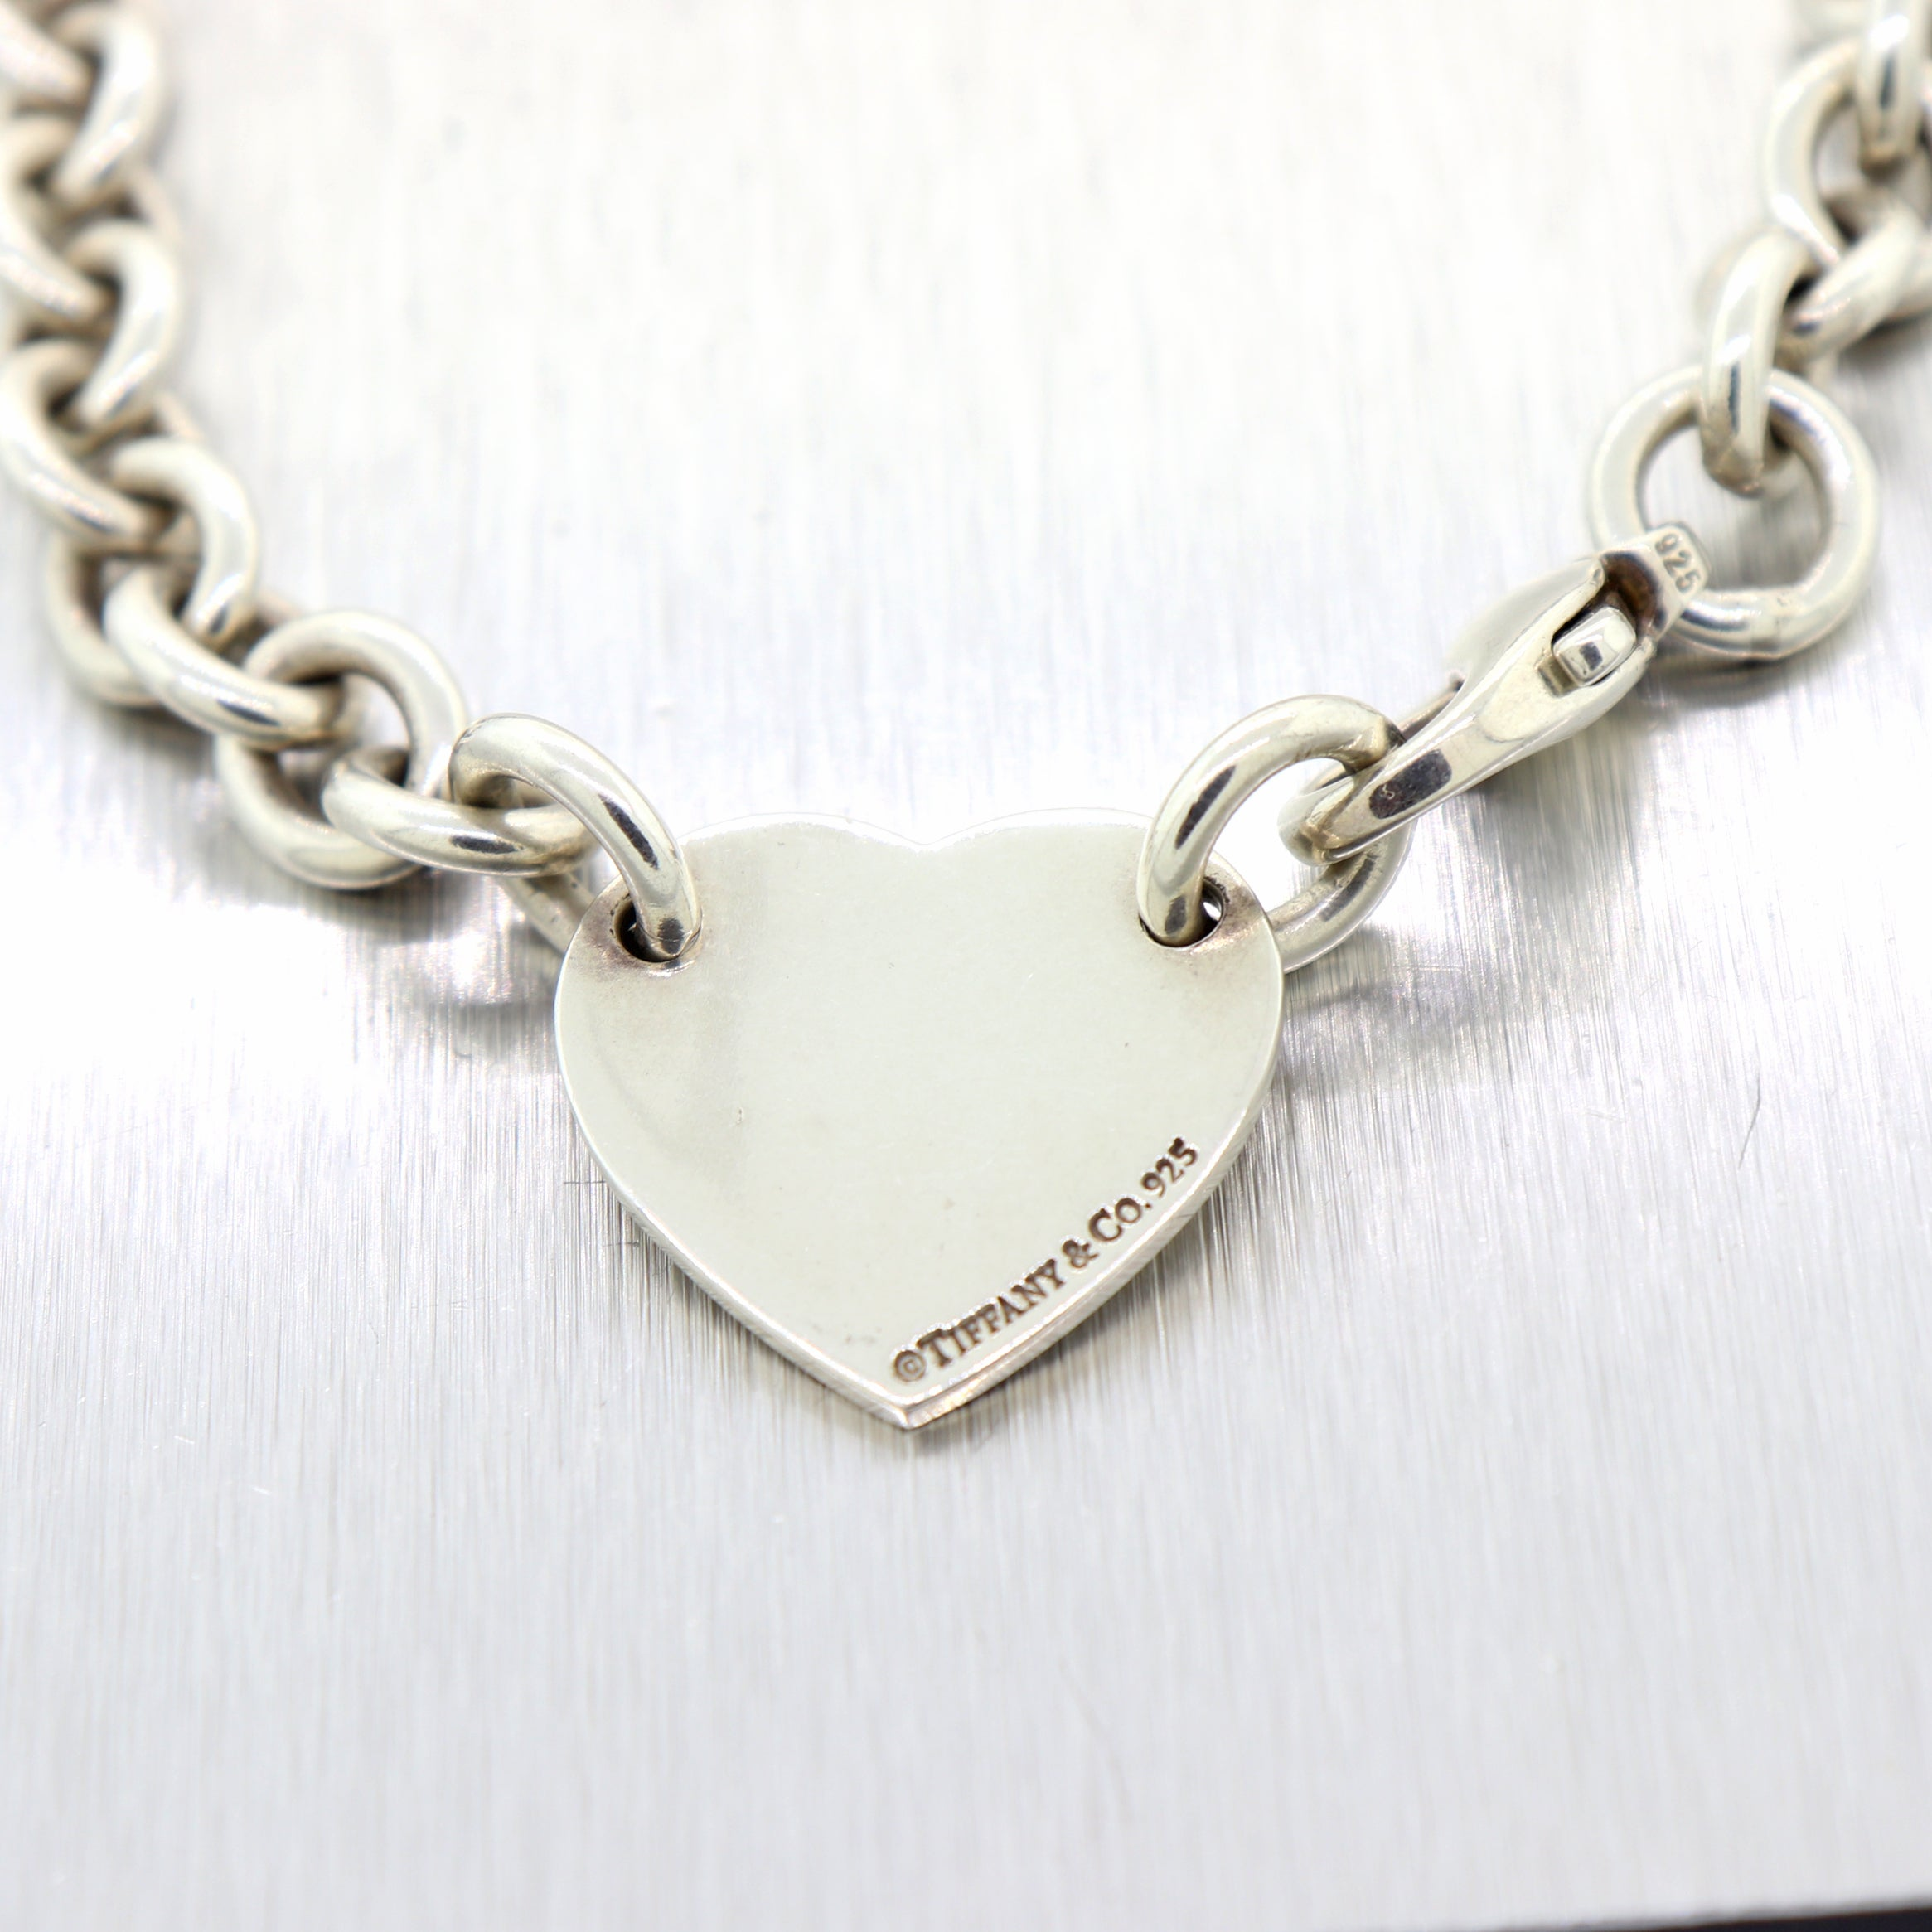 "Tiffany & Co. Sterling Silver Please Return Heart Tag 16"" Necklace"